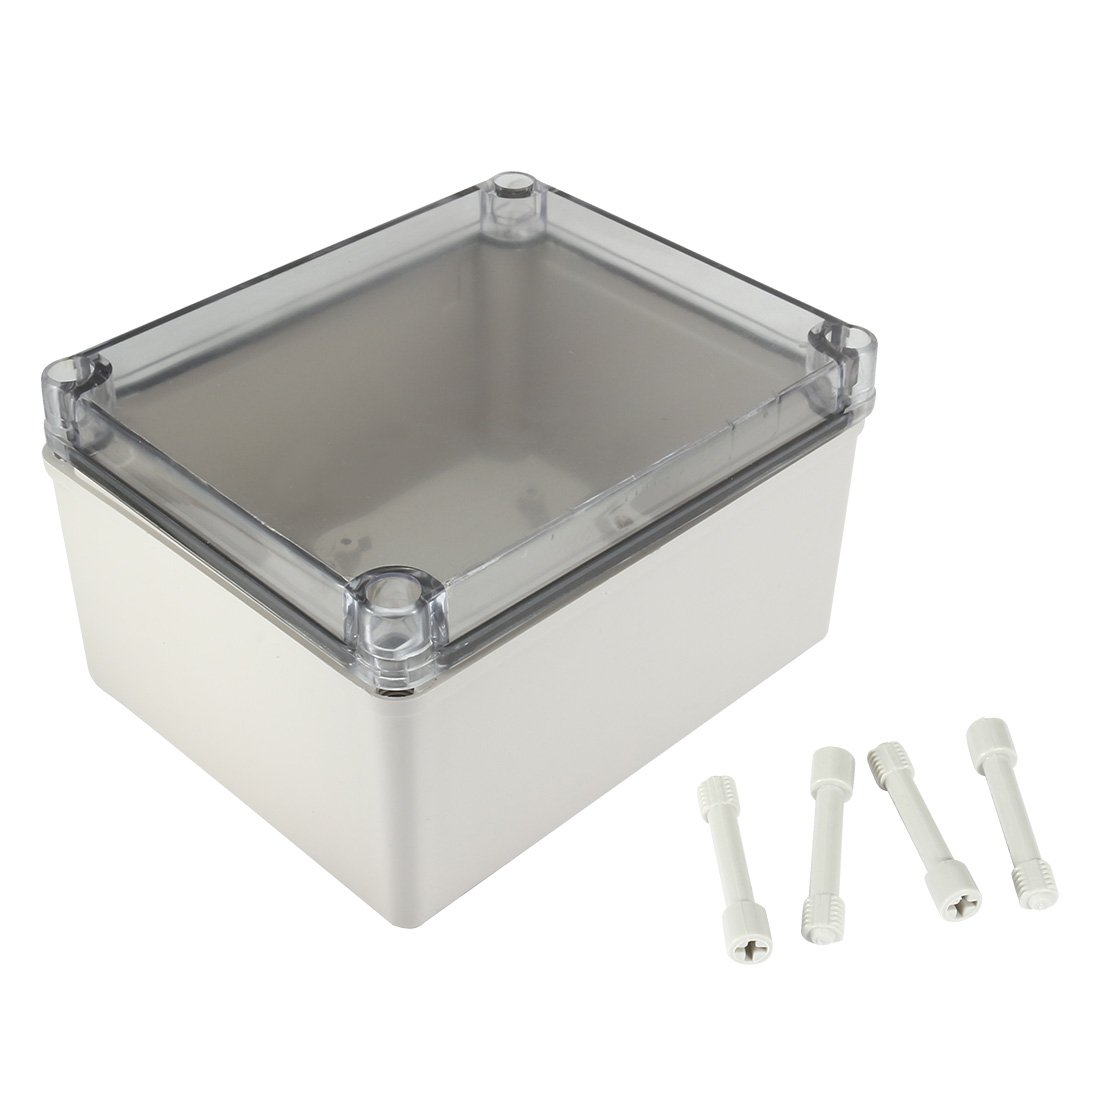 uxcell 5.5''x6.7''x3.7''(140mmx170mmx95mm) ABS Junction Box Universal Project Enclosure w PC Transparent Cover